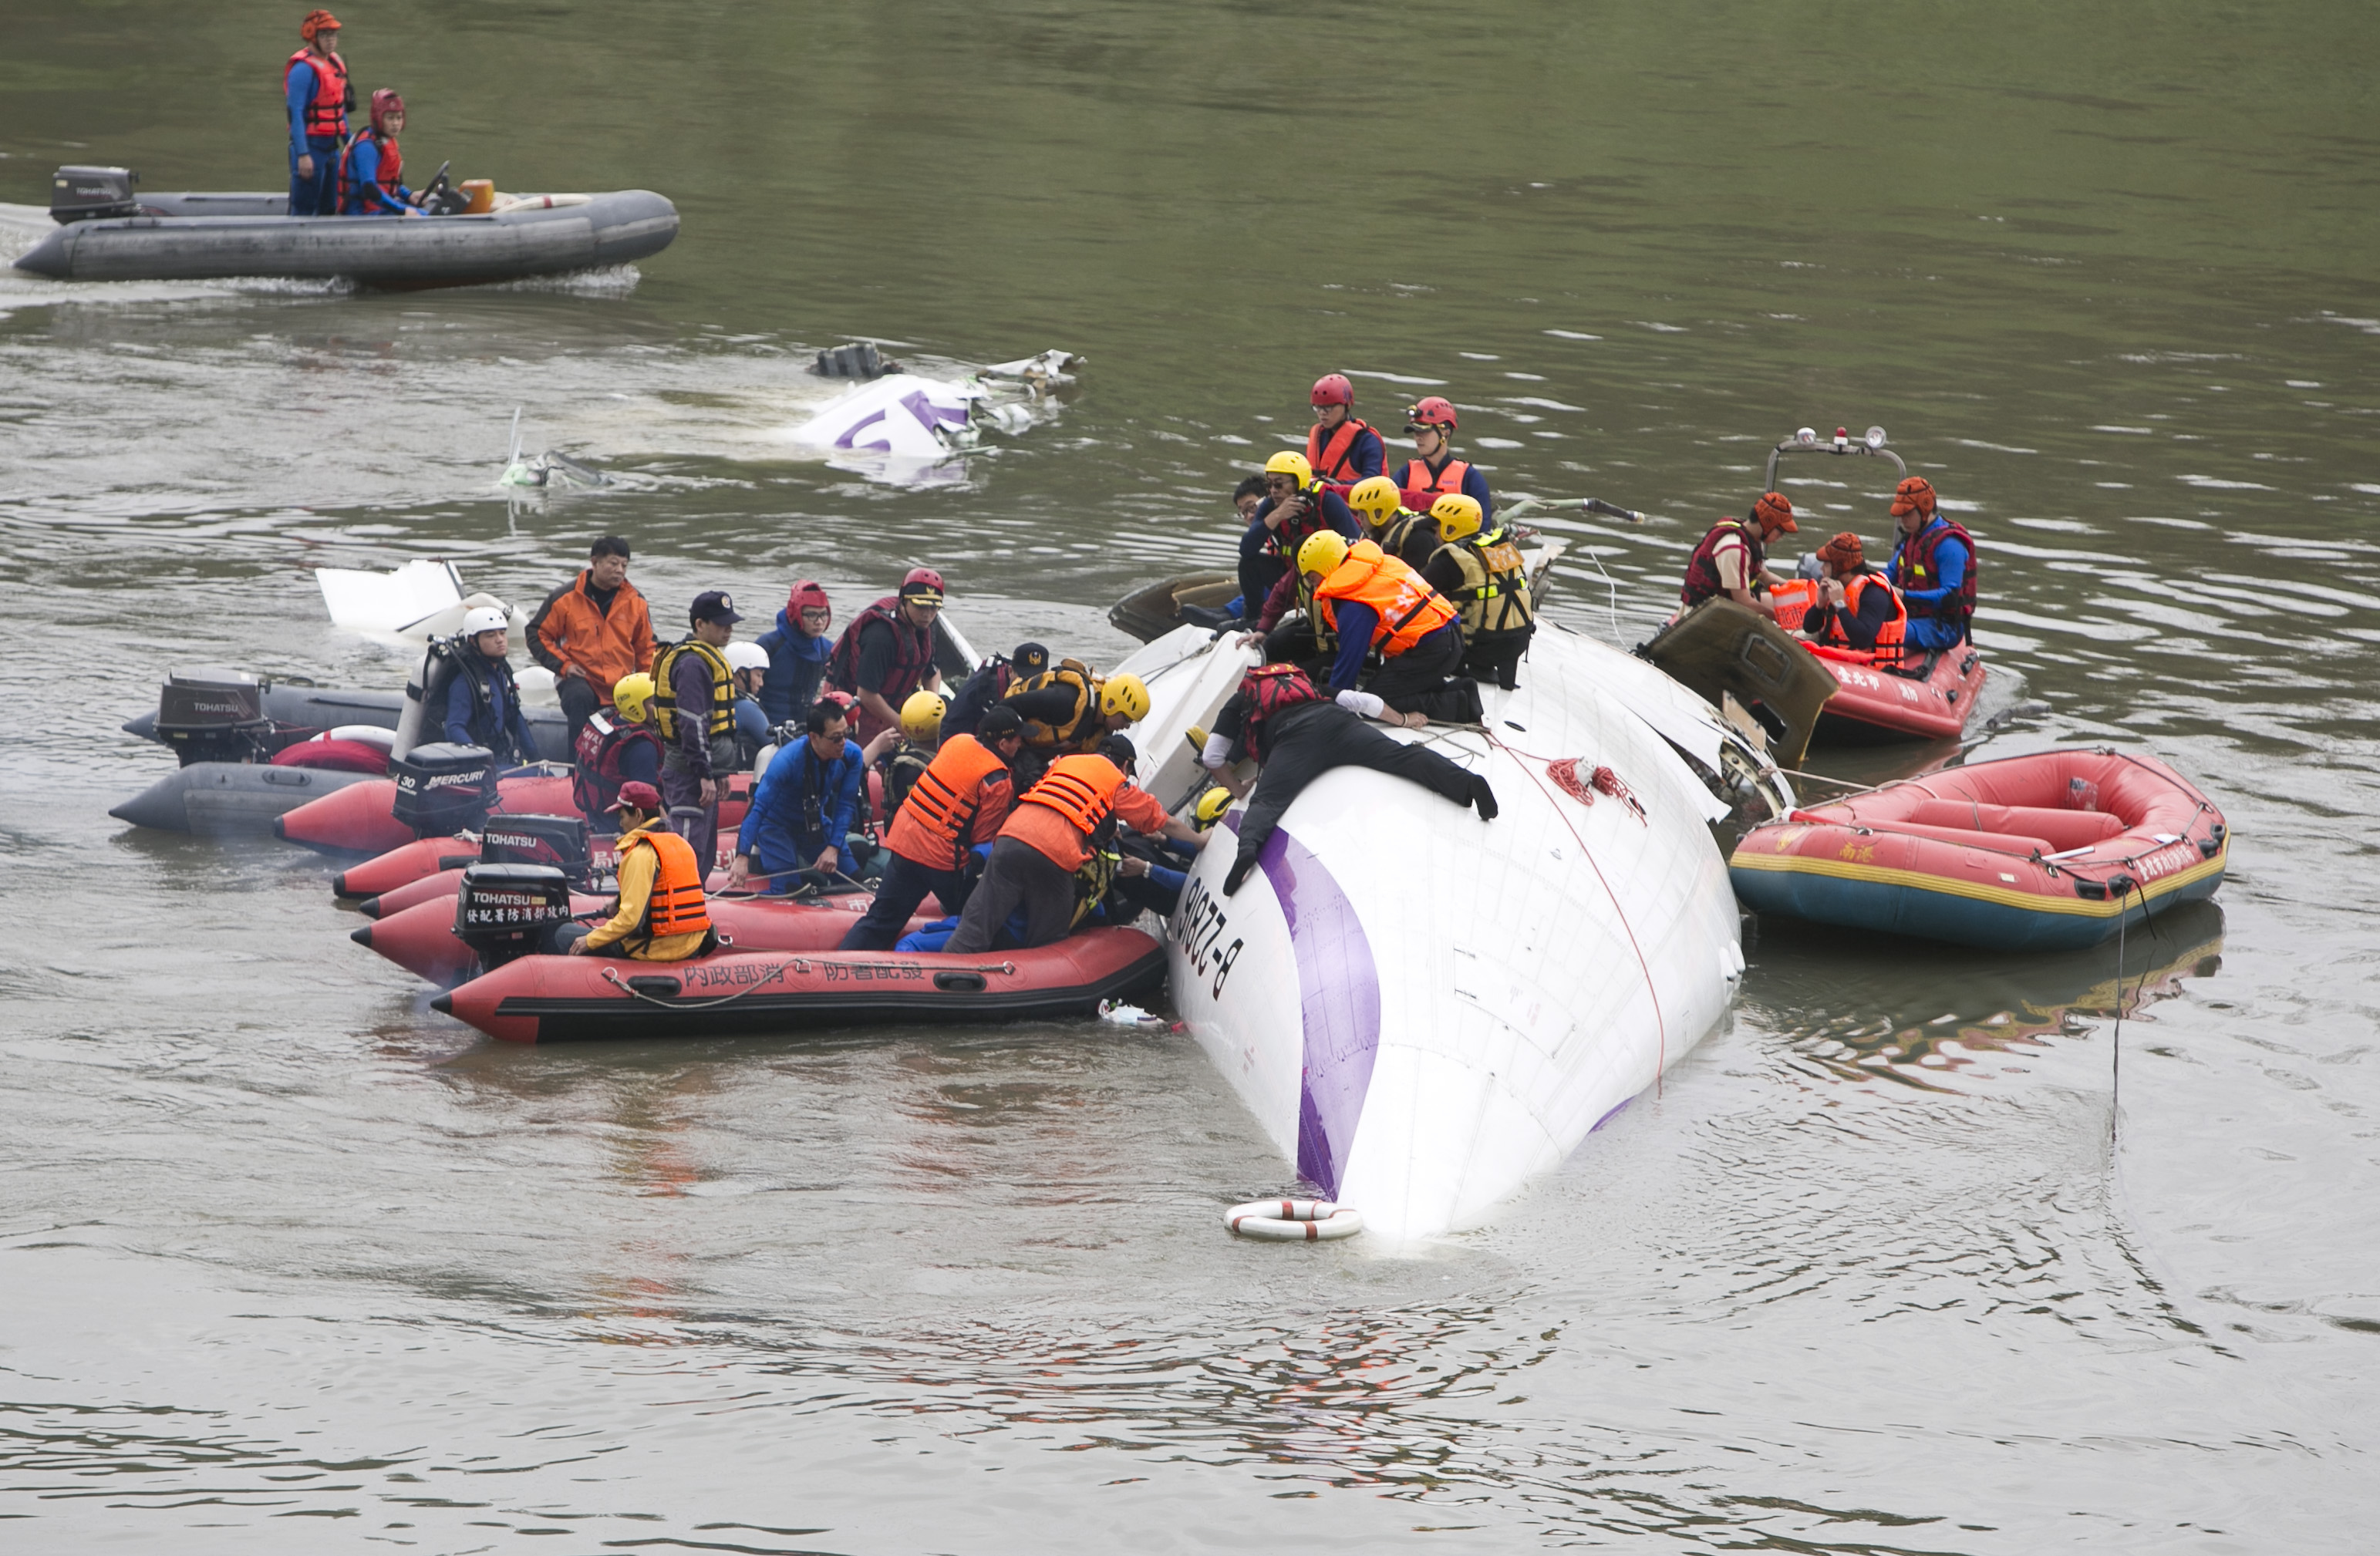 TransAsia Airways Plane Crashes In Taipei